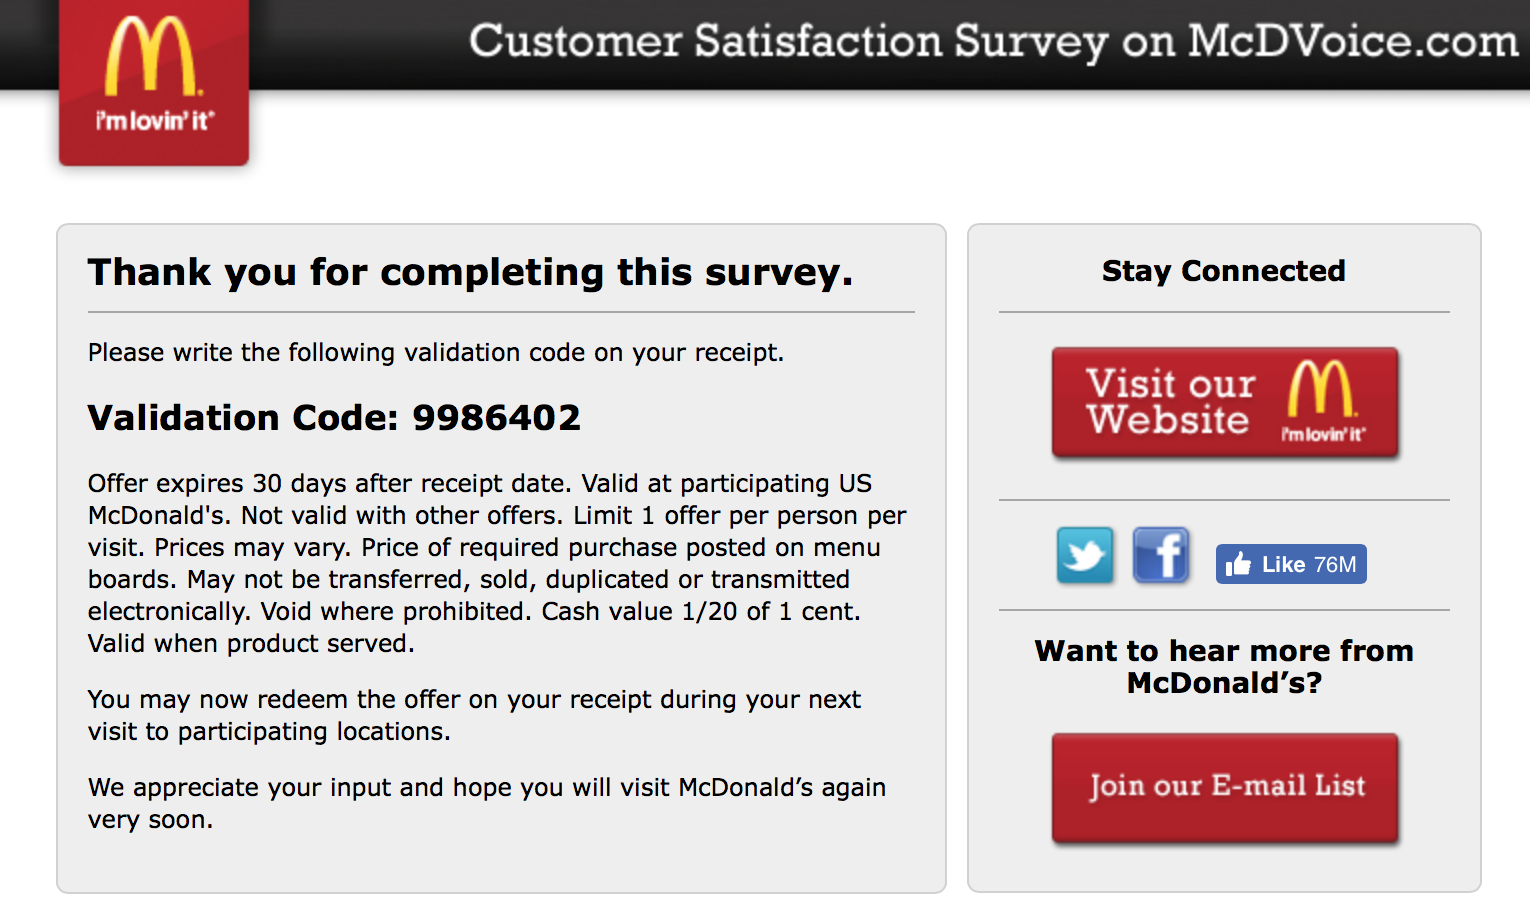 Mcdvoice.com Customer Survey 27